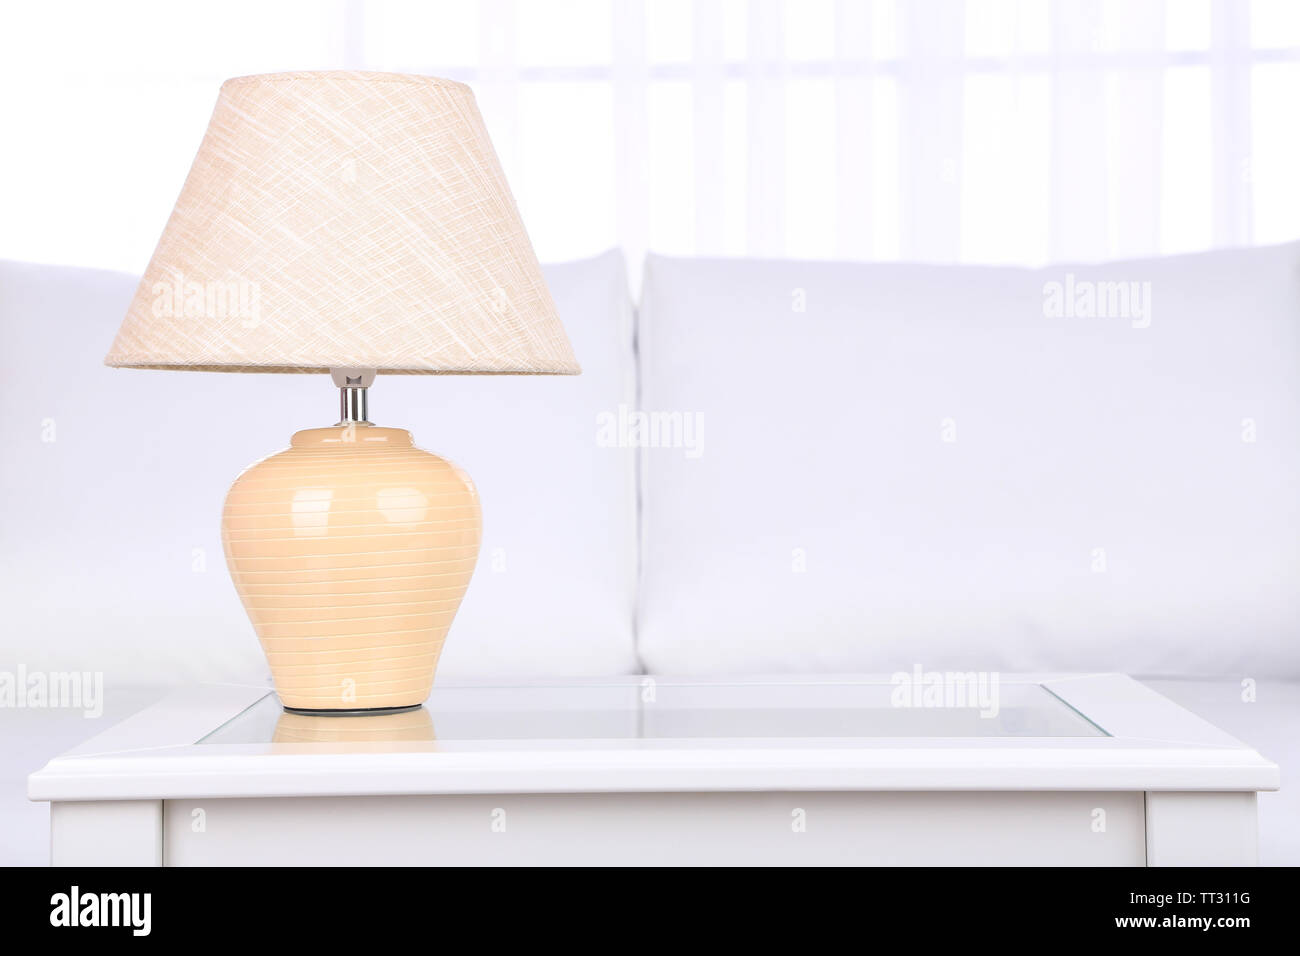 Lamp on coffee table in room - Stock Image